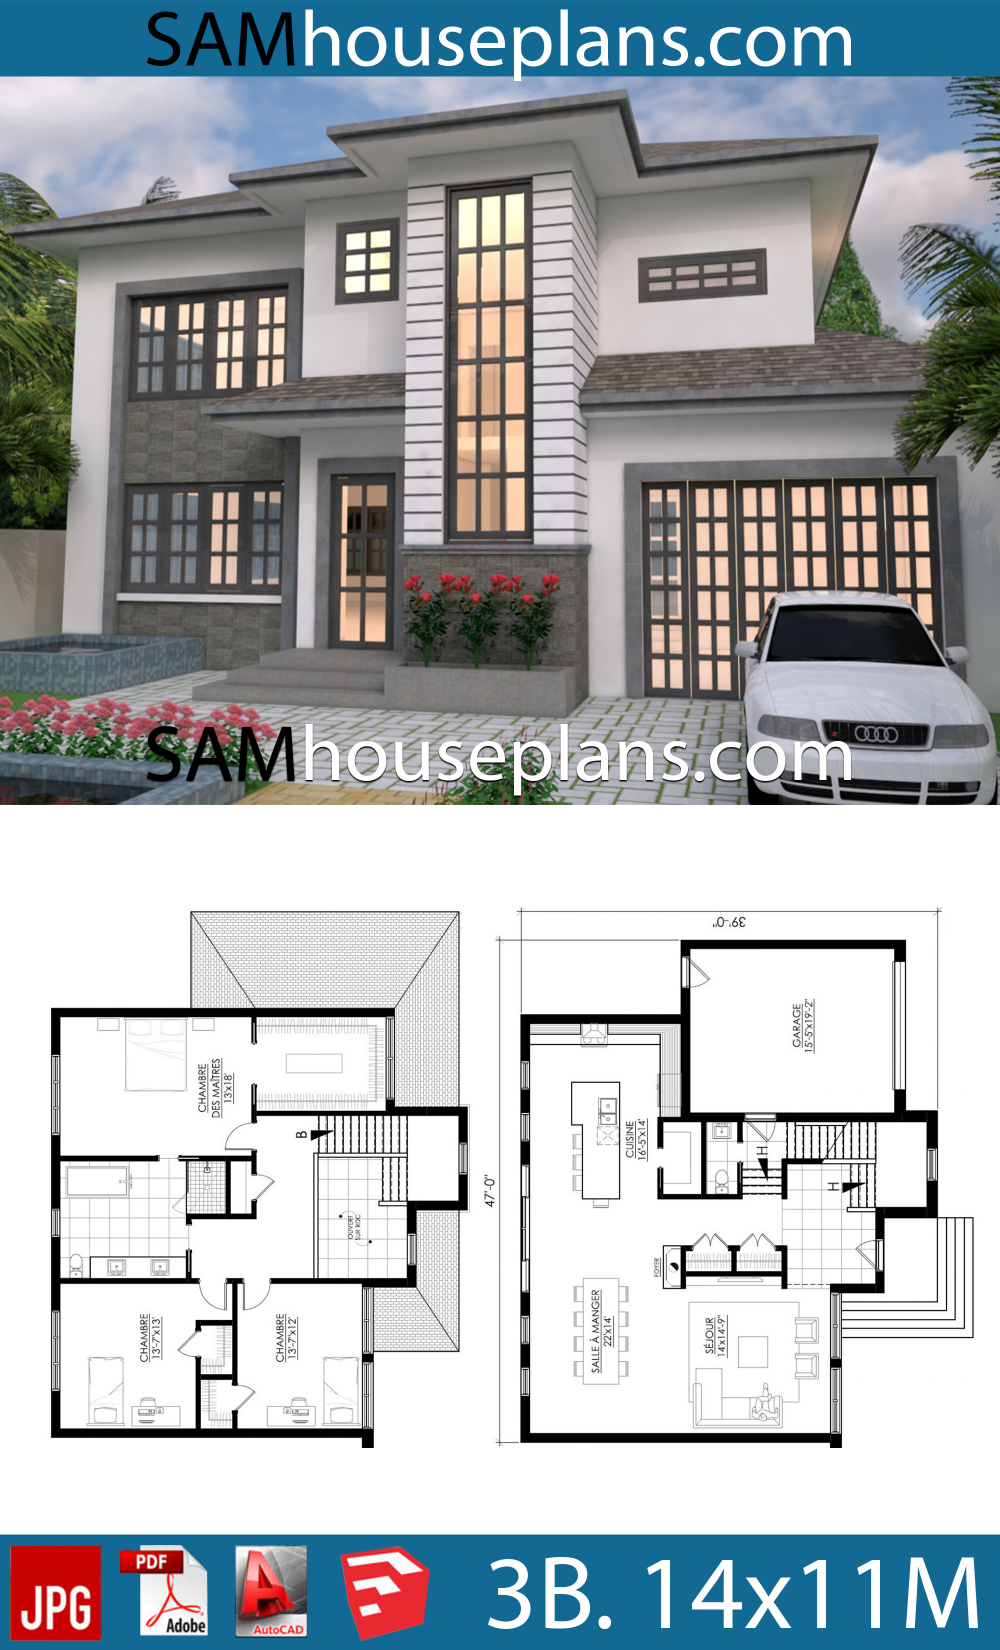 House Plans 14x11 With 3 Bedrooms House Plans Free Downloads In 2020 House Plans Dream House Plans Modern House Plans